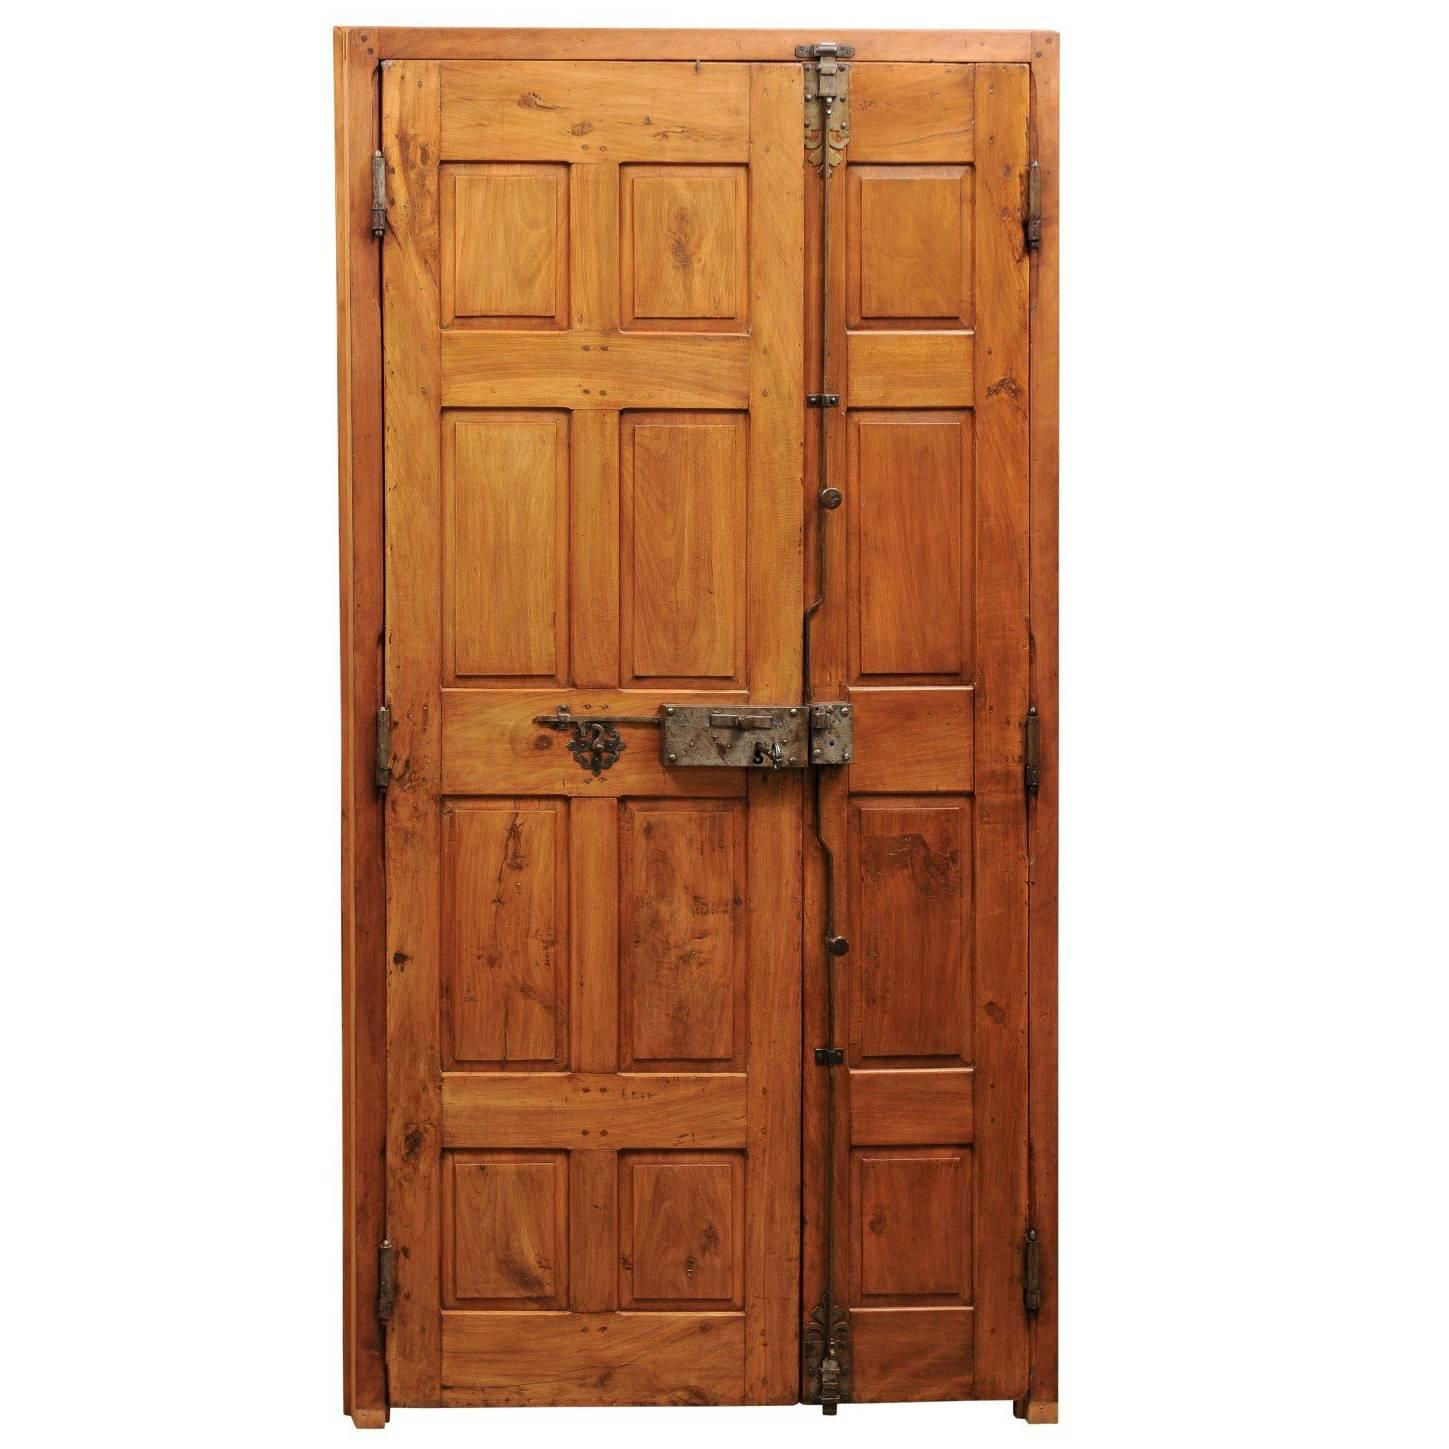 18th Century French Wooden Door with Simple Raised Panels and Original Hardware